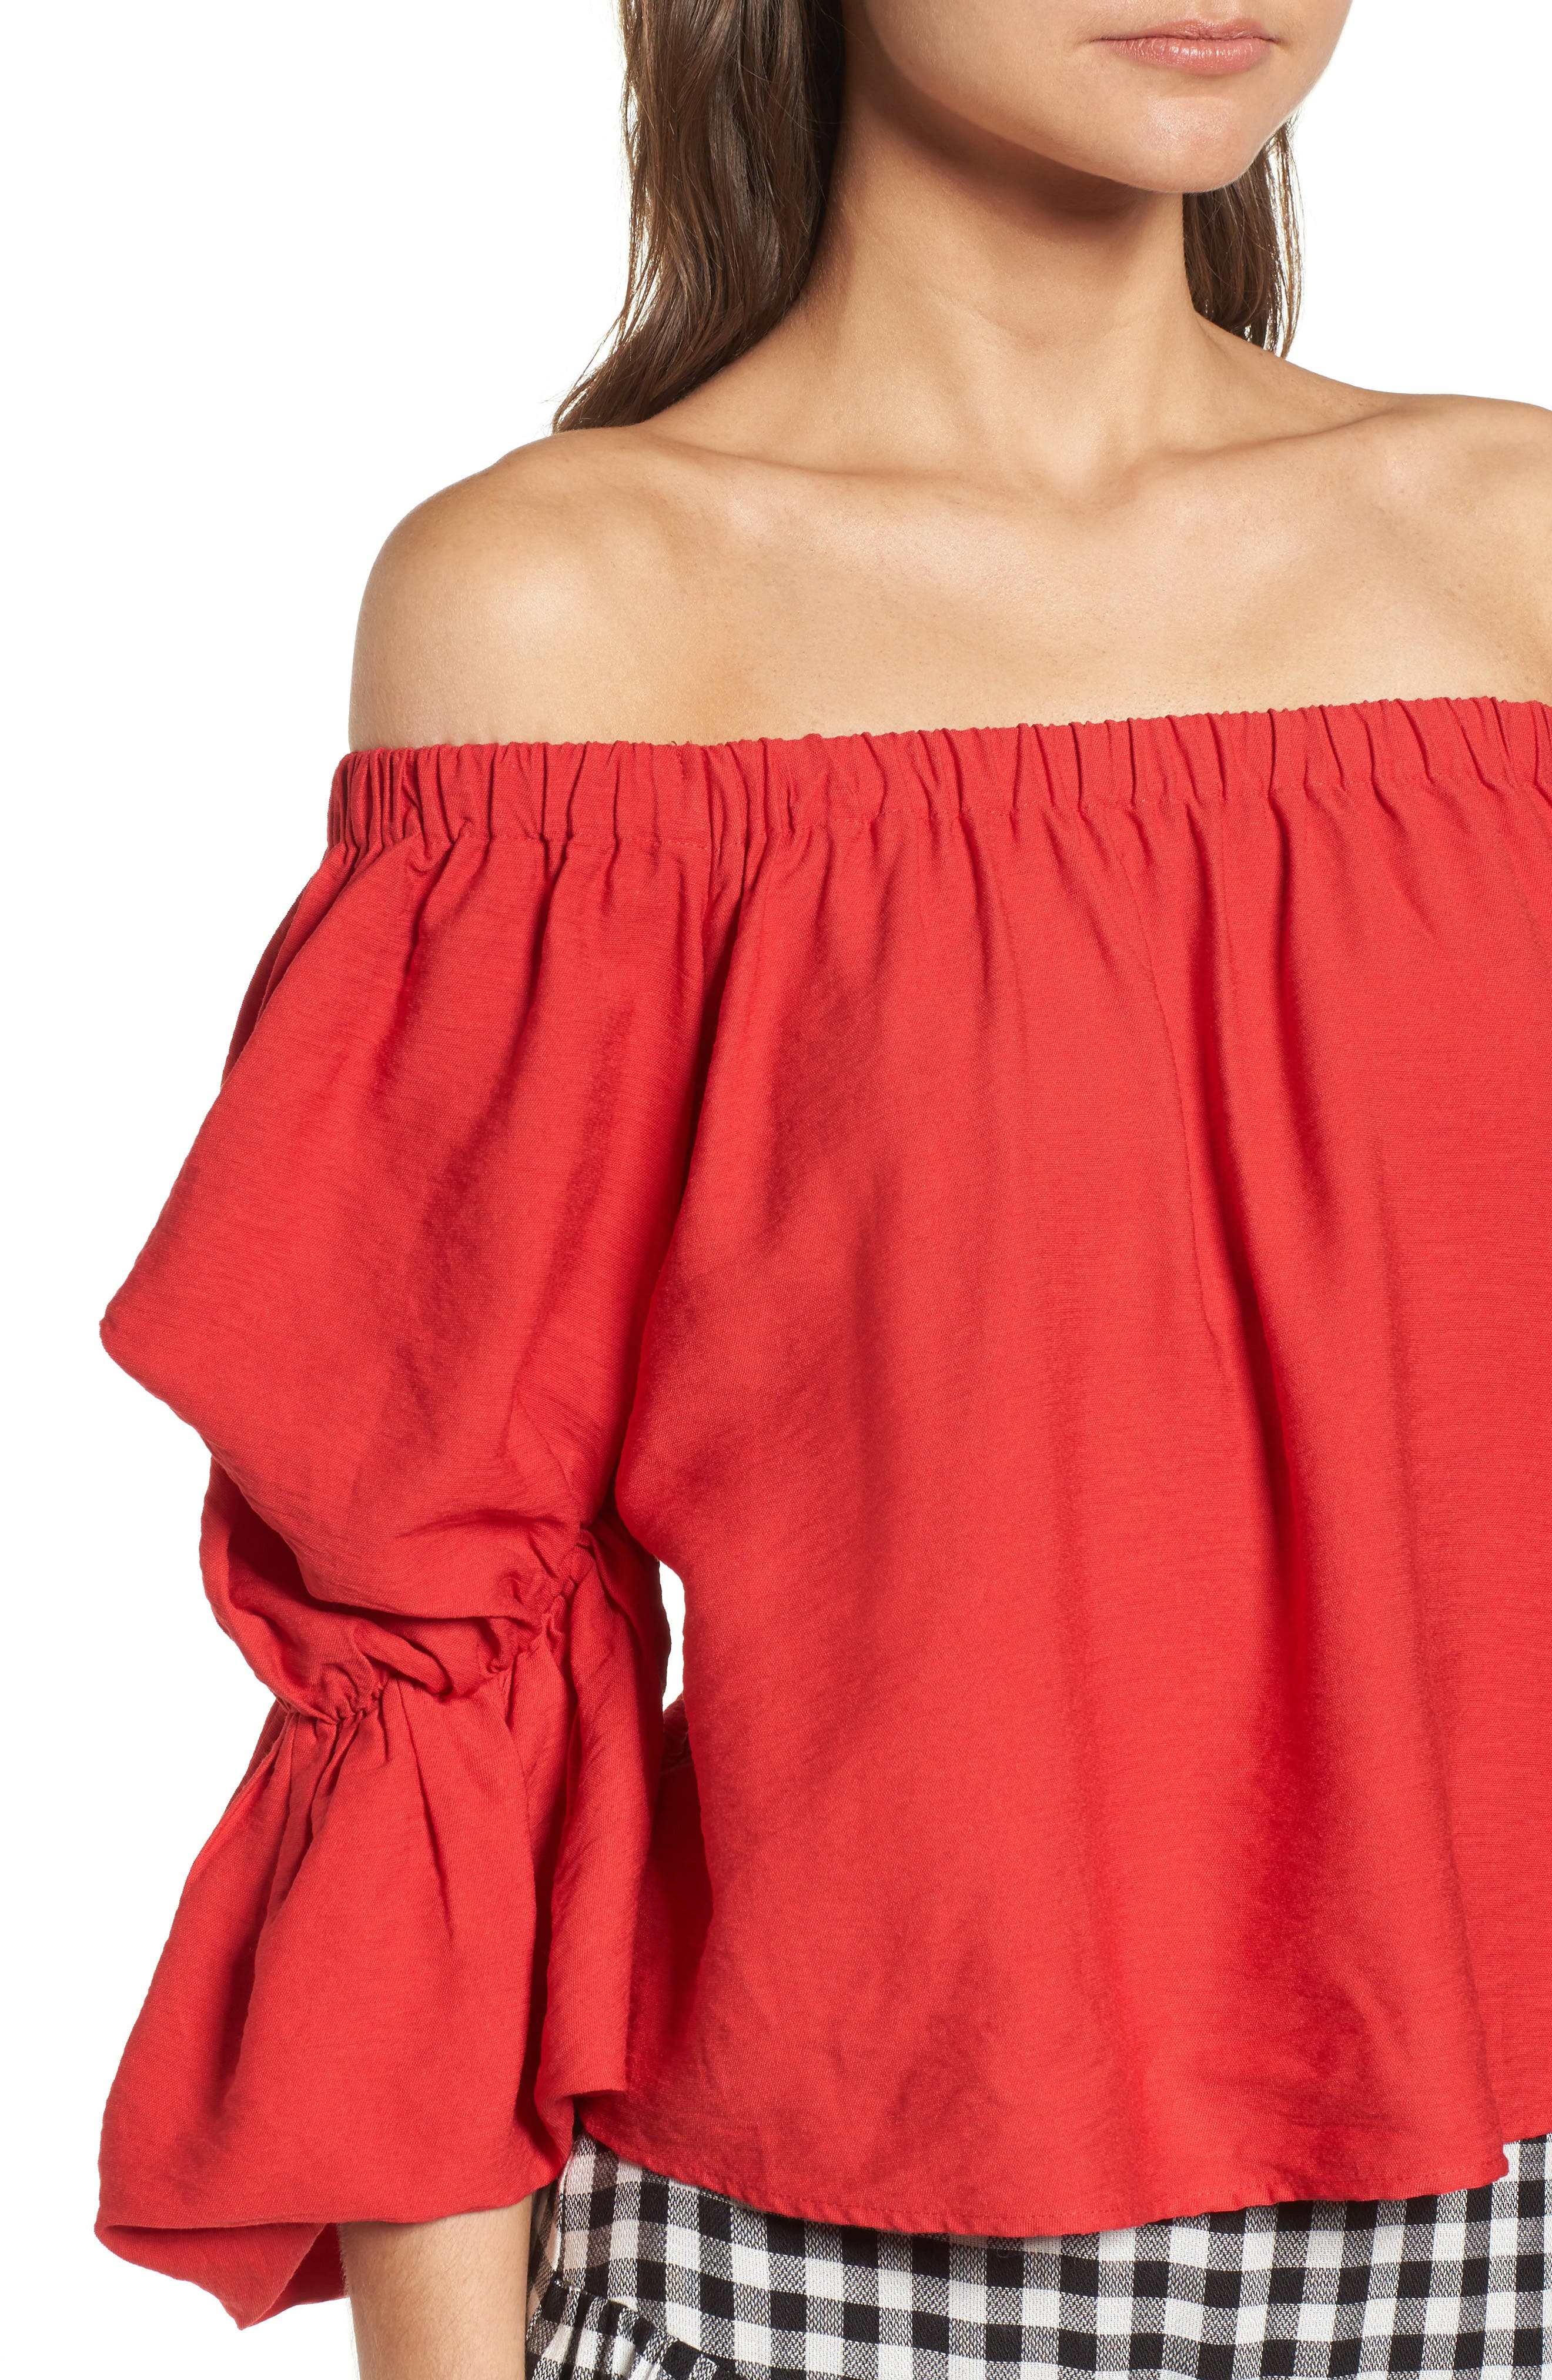 Puff Sleeve Off the Shoulder Top,                             Alternate thumbnail 4, color,                             600